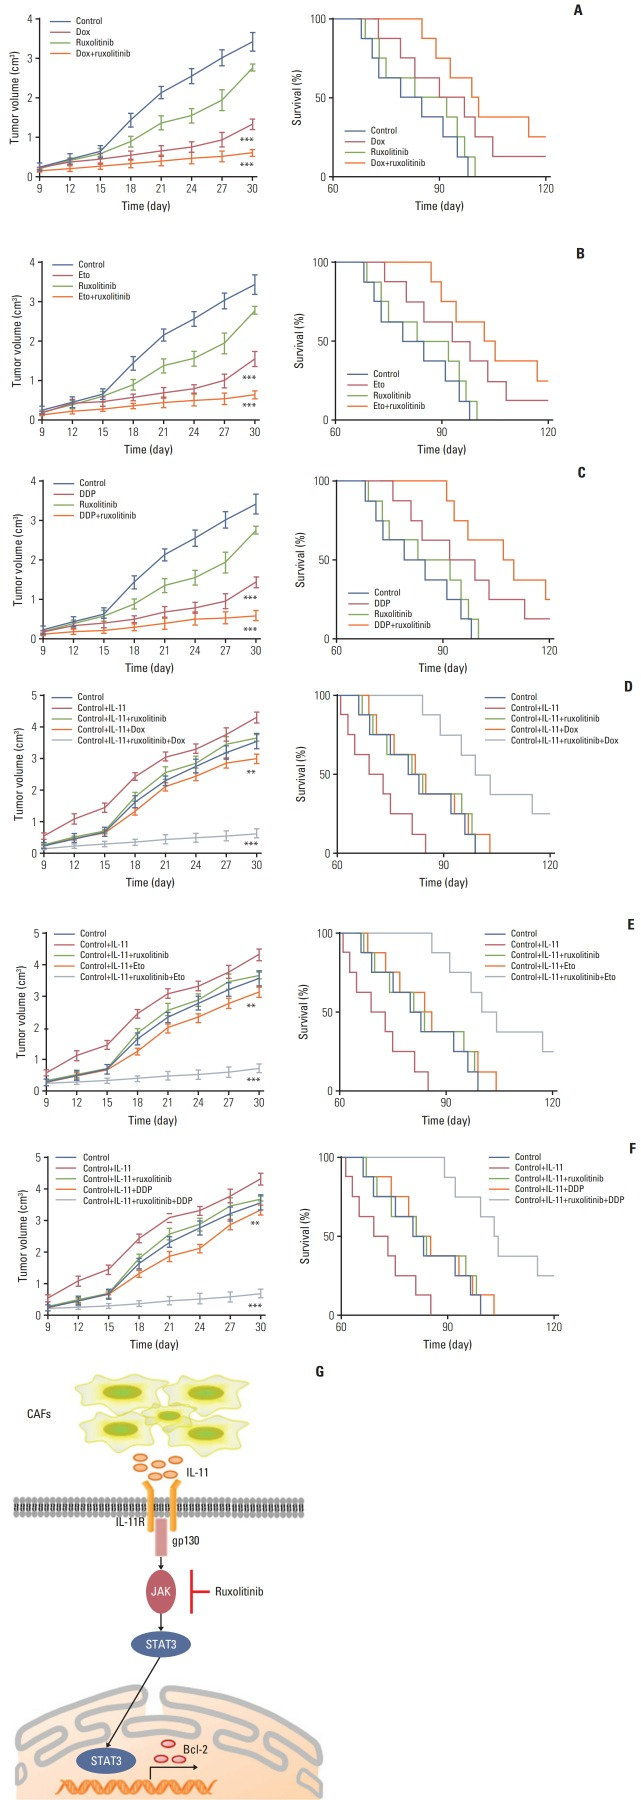 Blockade interlukin (IL)-11/IL-11R signal relieves chemotherapy drug resistance in gastric cancer. (A) The mean tumor volume of NOD-SCID mice bearing SGC7901 cells implants in phosphate buffered saline (PBS), doxorubicin, ruxolitinib, or doxorubicin combing ruxolitinib (left); the long-term survival of tumor bearing mice treated with PBS, doxorubicin, ruxolitinib, or doxorubicin combing ruxolitinib (right). Eto, etoposide; Dox, doxorubicin. (B) The mean tumor volume of NOD-SCID mice bearing SGC7901 cells implants in PBS, etoposide, ruxolitinib, or etoposide combing ruxolitinib (left); the long-term survival of tumor bearing mice treated with PBS, etoposide, ruxolitinib, or etoposide combing ruxolitinib (right). (C) The mean tumor volume of NOD-SCID mice bearing SGC7901 cells implants in PBS, DDP, ruxolitinib, or DDP combing ruxolitinib (left); the long-term survival of tumor bearing mice treated with PBS, DDP, ruxolitinib, or DDP combing ruxolitinib (right). (D) The mean tumor volume of NOD-SCID mice bearing SGC7901 cells injected with rhIL-11 and then treated with PBS, doxorubicin, ruxolitinib, or doxorubicin combing ruxolitinib (left); the long-term survival of NOD-SCID mice bearing SGC7901 cells injected with rhIL-11 (2.5 μg/kg) and then treated with PBS, doxorubicin, ruxolitinib, or doxorubicin combing ruxolitinib (right). (E) The mean tumor volume of NOD-SCID mice bearing SGC7901 cells injected with rhIL-11 (2.5 μg/kg) and then treated with PBS, etoposide, ruxolitinib, or etoposide combing ruxolitinib (left); the long-term survival of NOD-SCID mice bearing SGC7901 cells injected with rhIL-11 and then treated with PBS, etoposide, ruxolitinib, or etoposide combing ruxolitinib (right). (F) The mean tumor volume of NOD-SCID mice bearing SGC7901 cells injected with rhIL-11 (2.5 μg/kg) and then treated with PBS, DDP, ruxolitinib, or DDP combing ruxolitinib (left); the long-term survival of NOD-SCID mice bearing SGC7901 cells injected with rhIL-11 and then treated wit